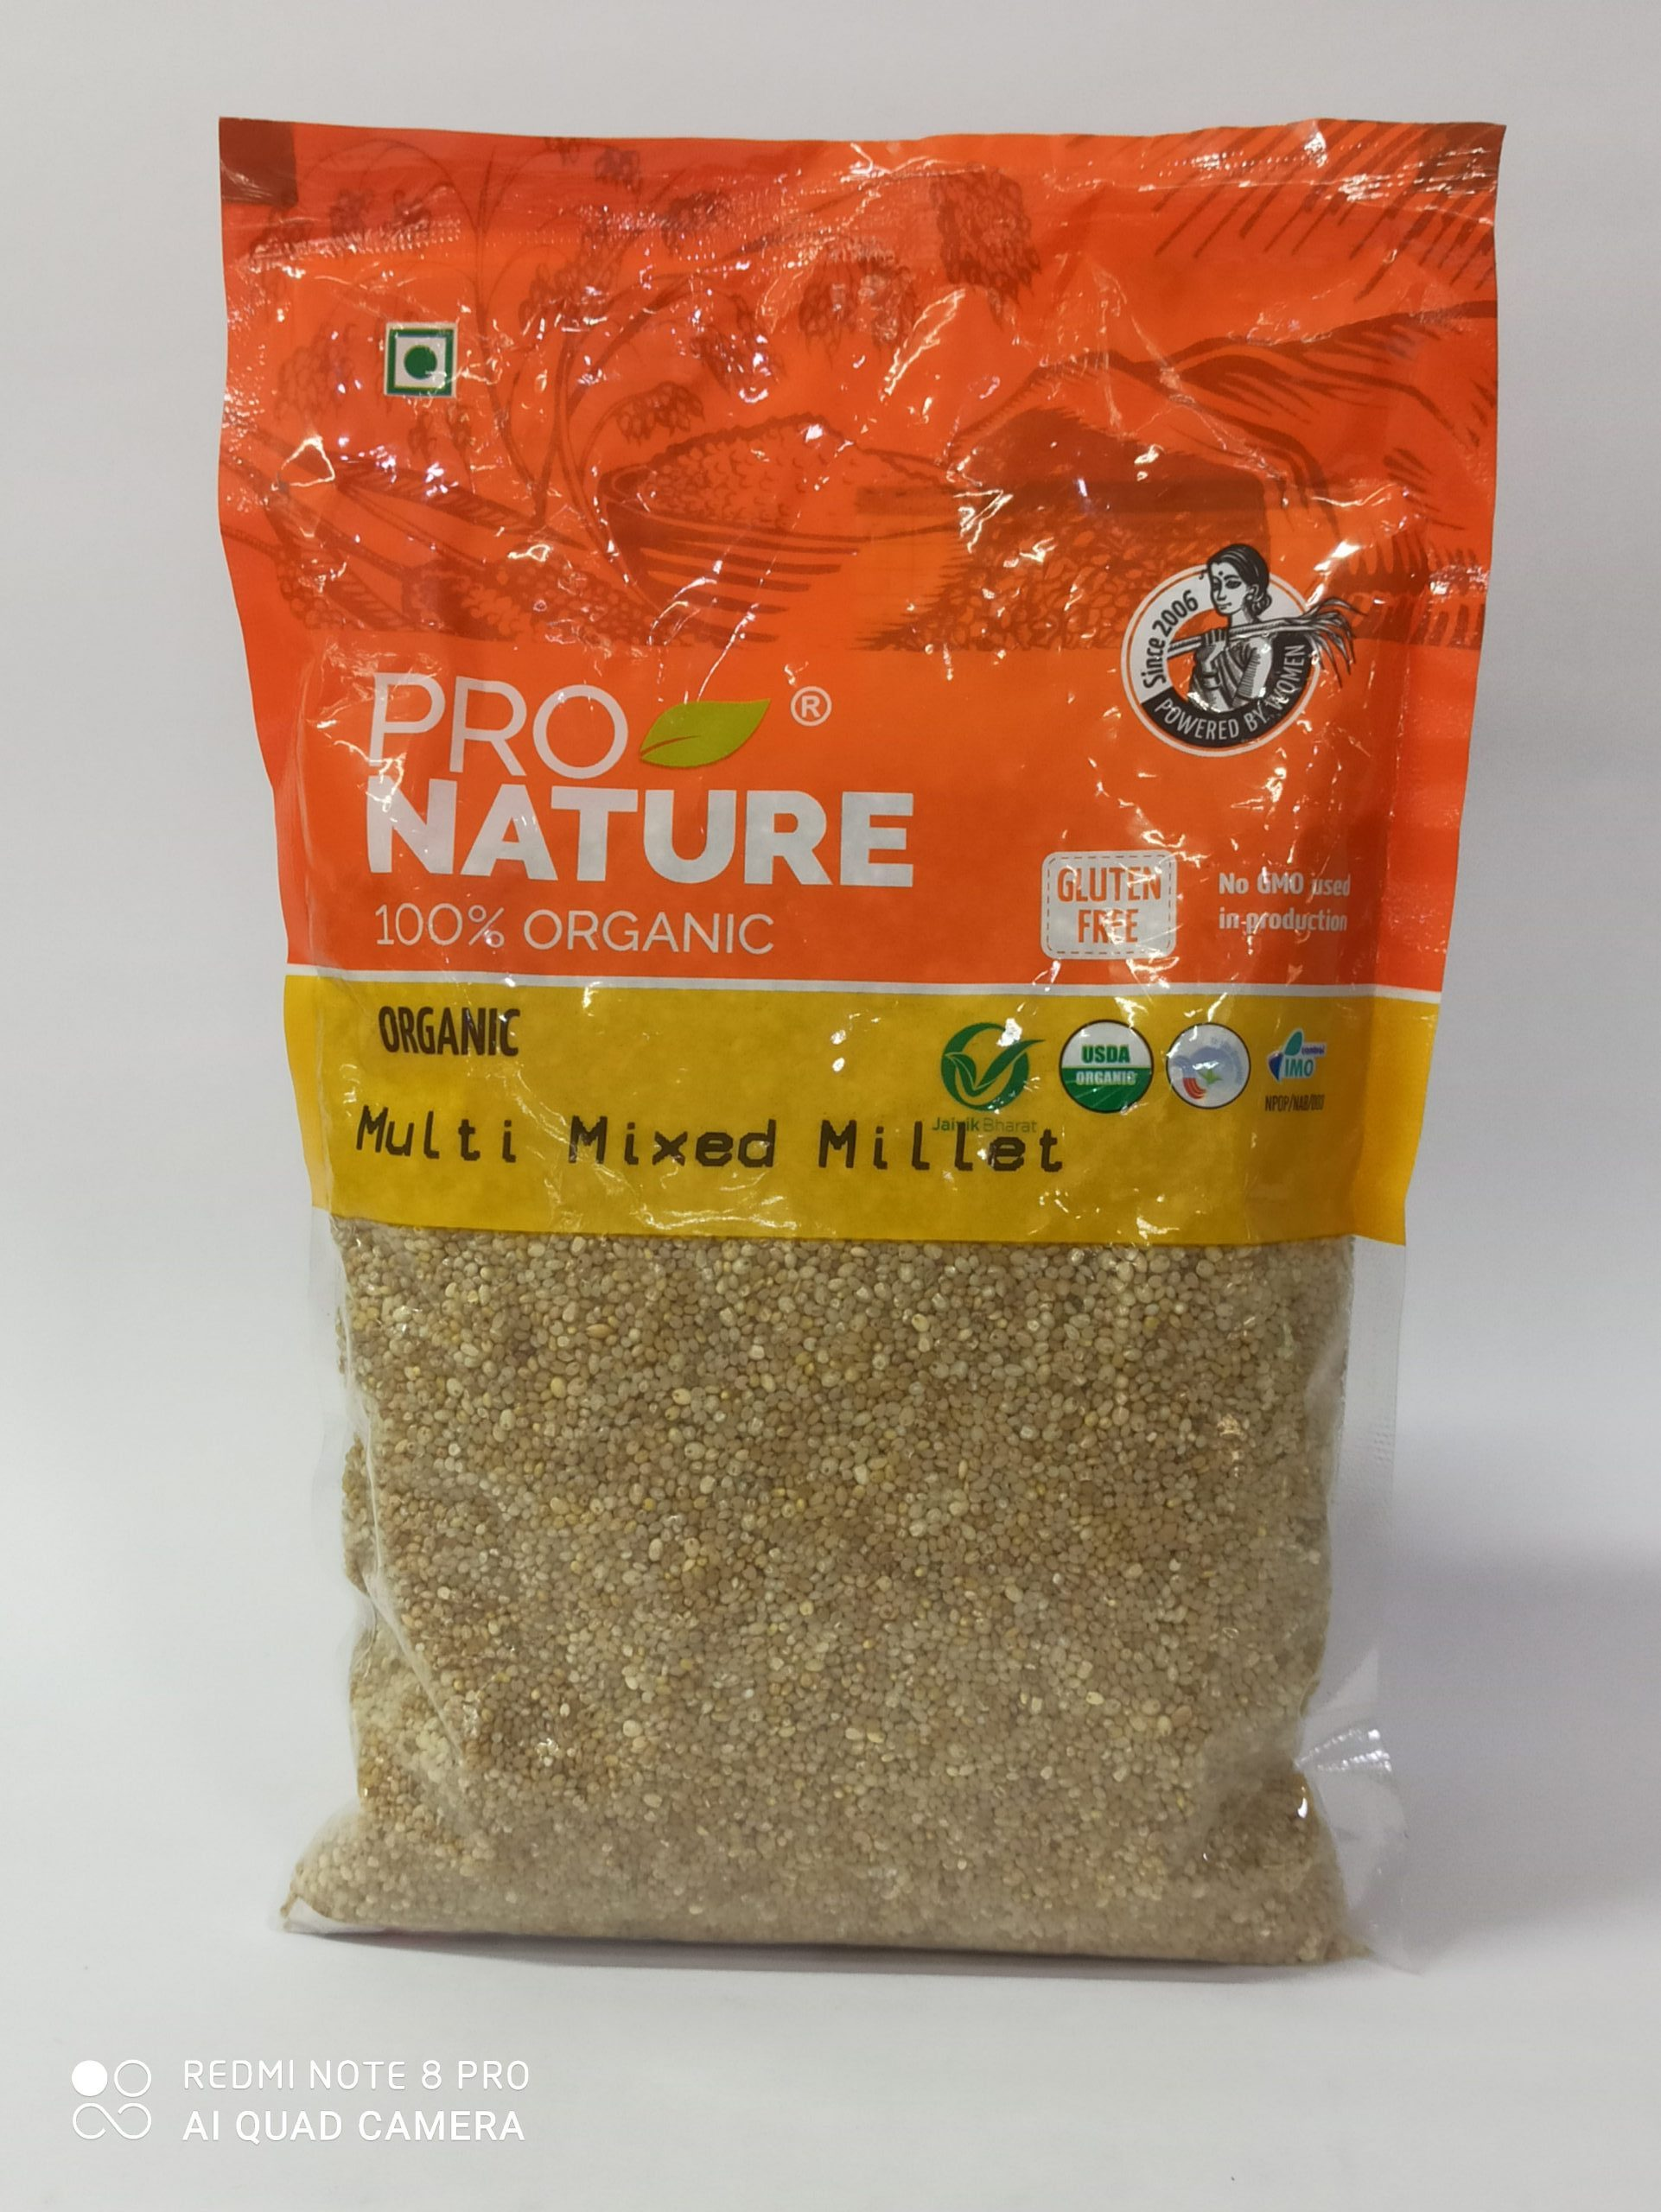 PRO NATURE MULTI MIXED MILLET 500GM